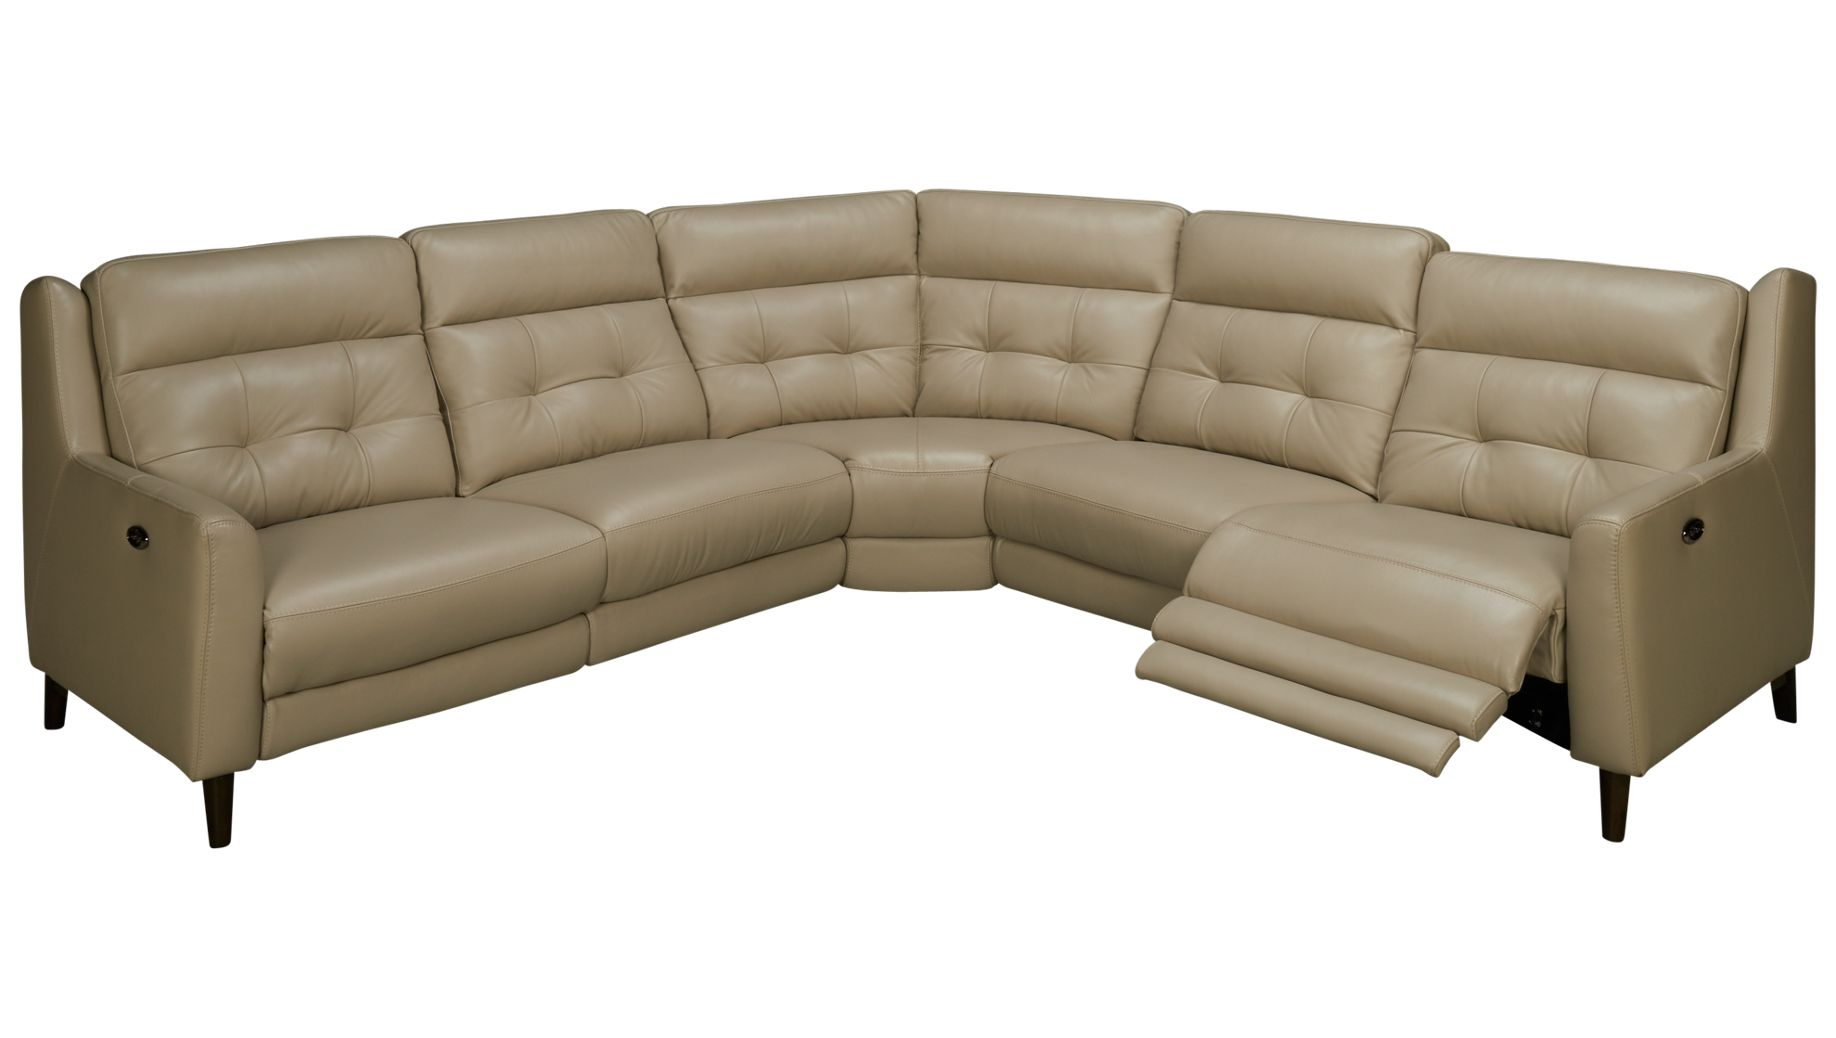 Htl leather sofas reviews refil sofa for Htl sectional leather sofa